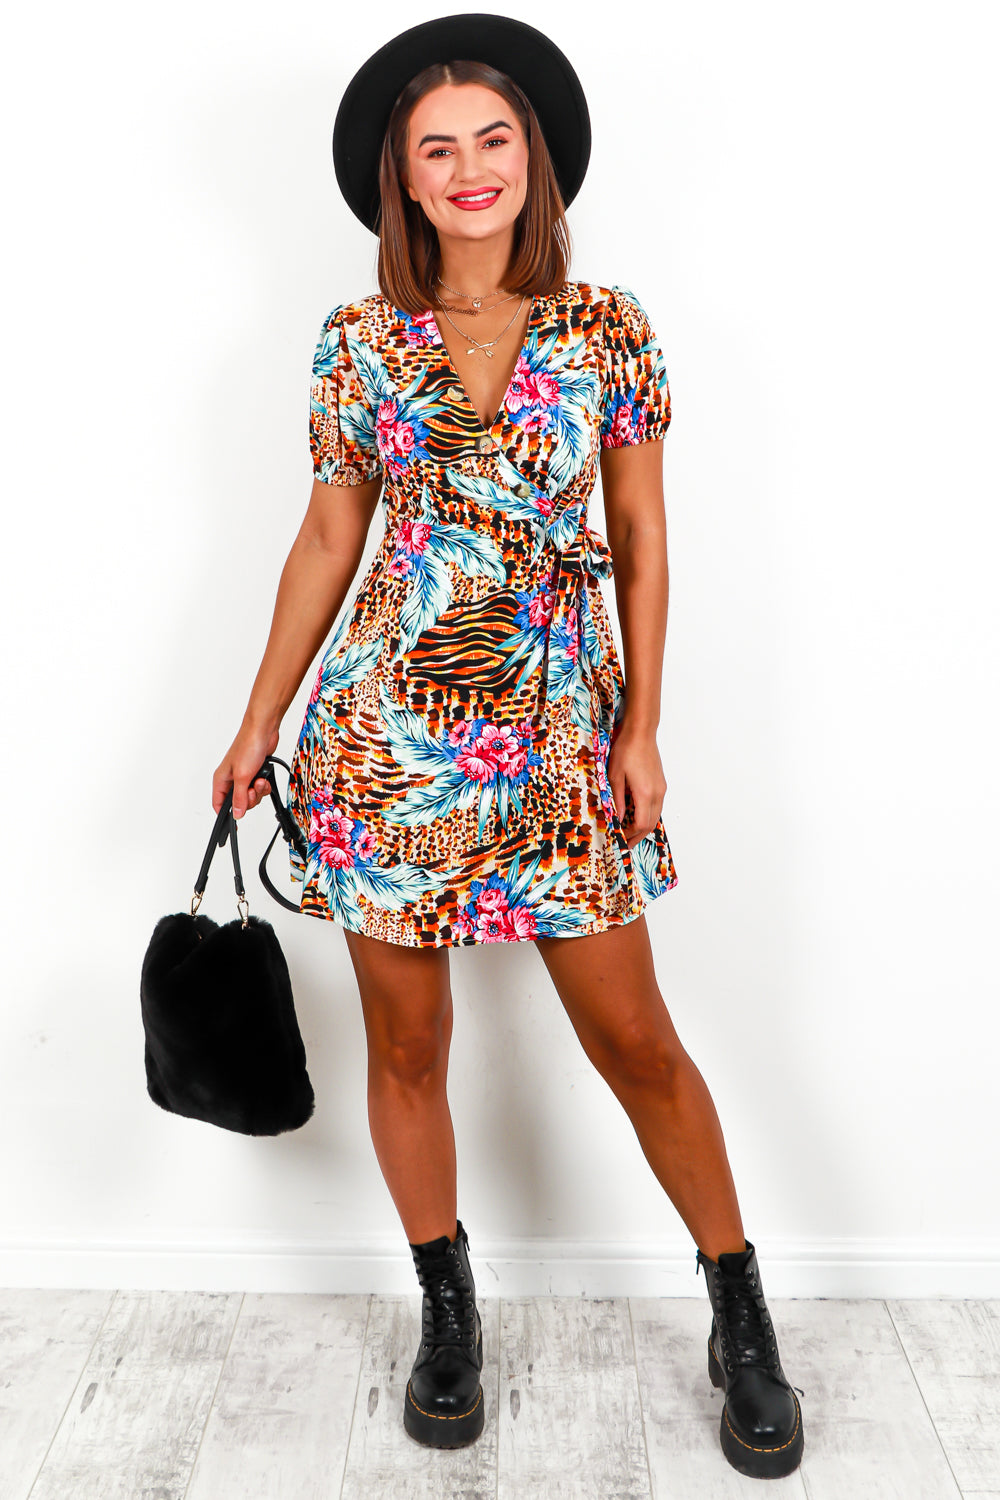 Dress Mini Floral Leopard Print- DLSB Women's Fashion